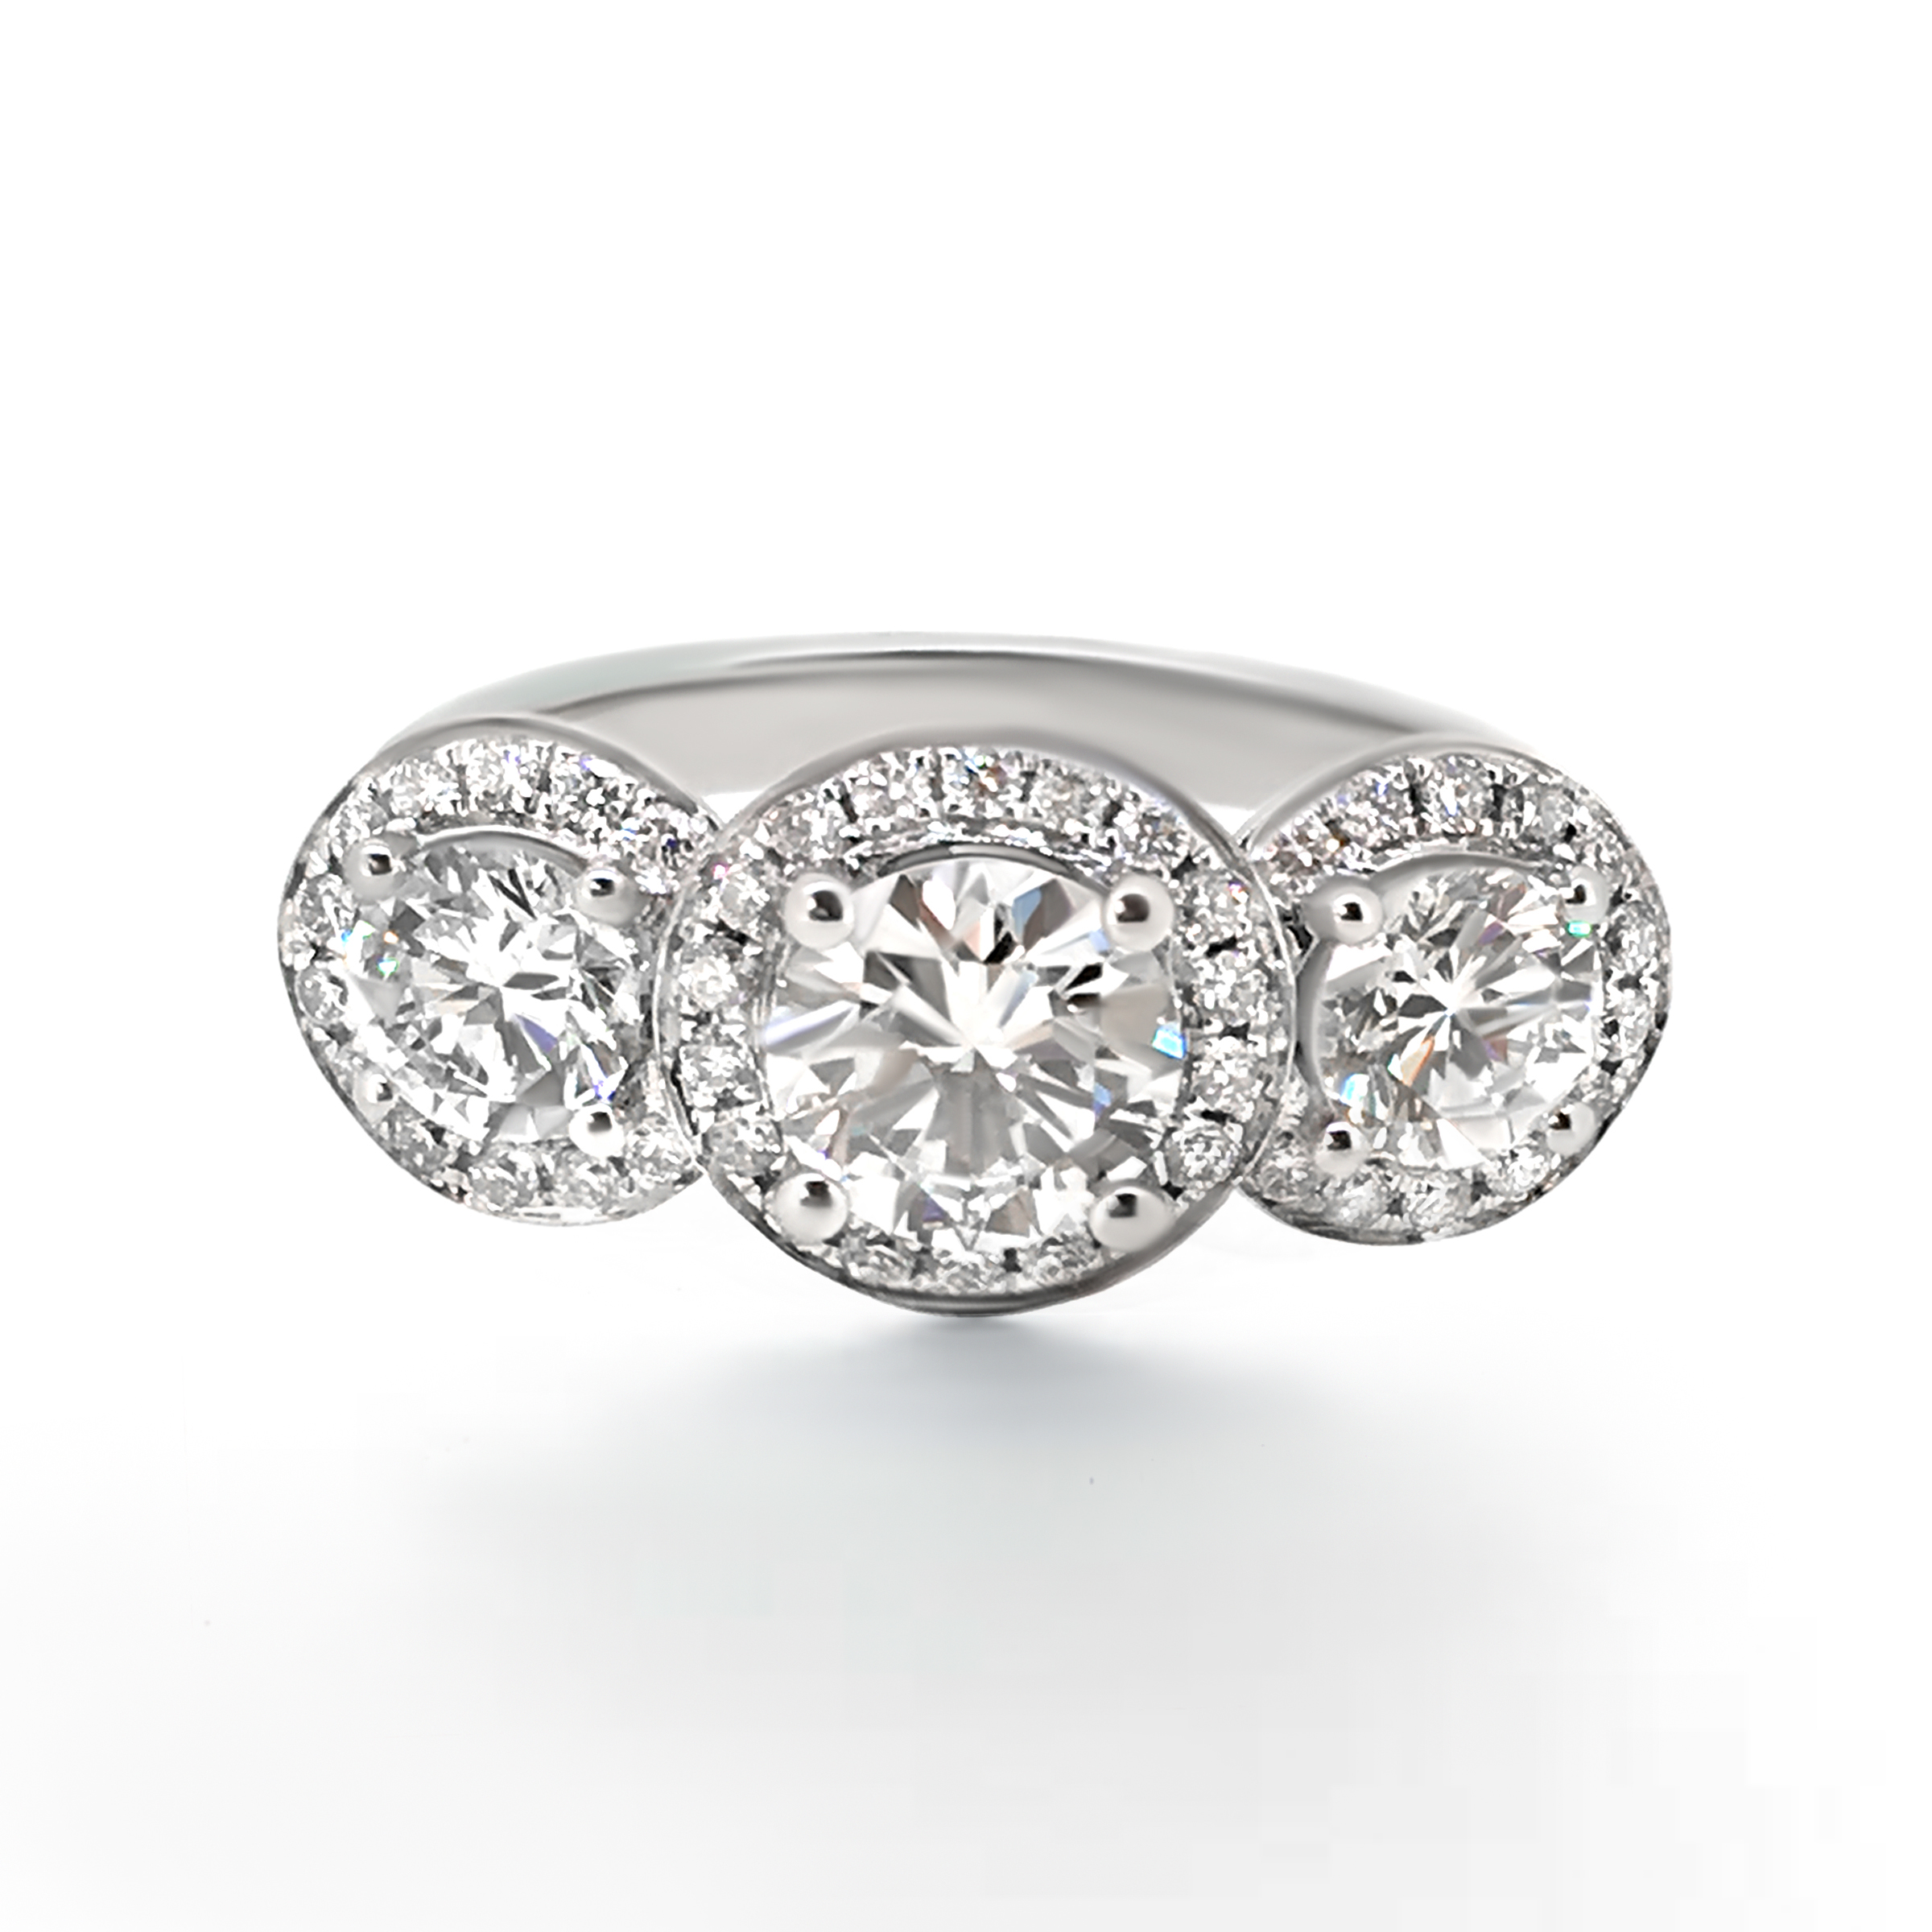 trilogy diamond ring with halos- haywards of hong kong